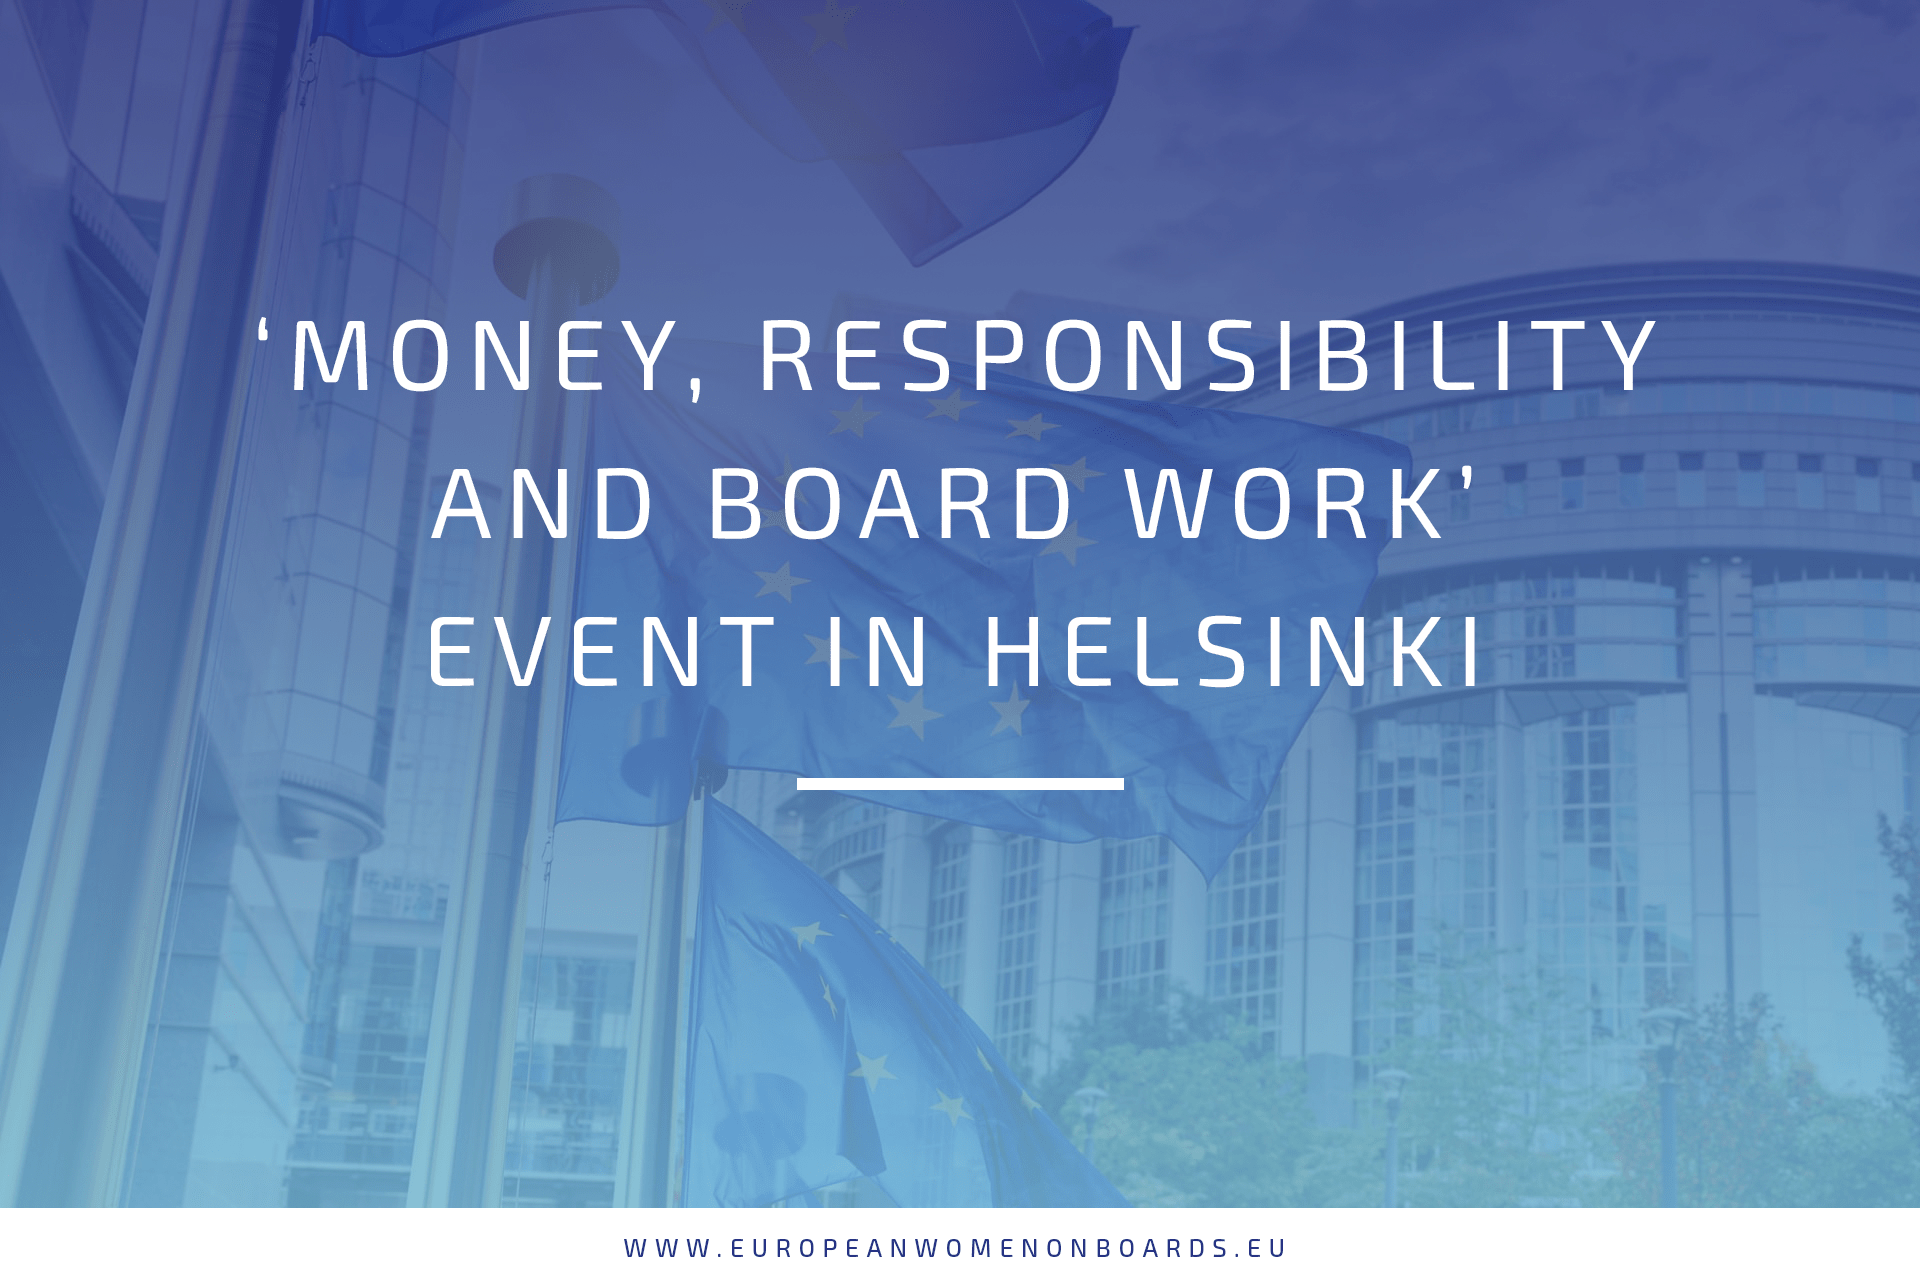 'Money, responsibility and board work' event in Helsinki